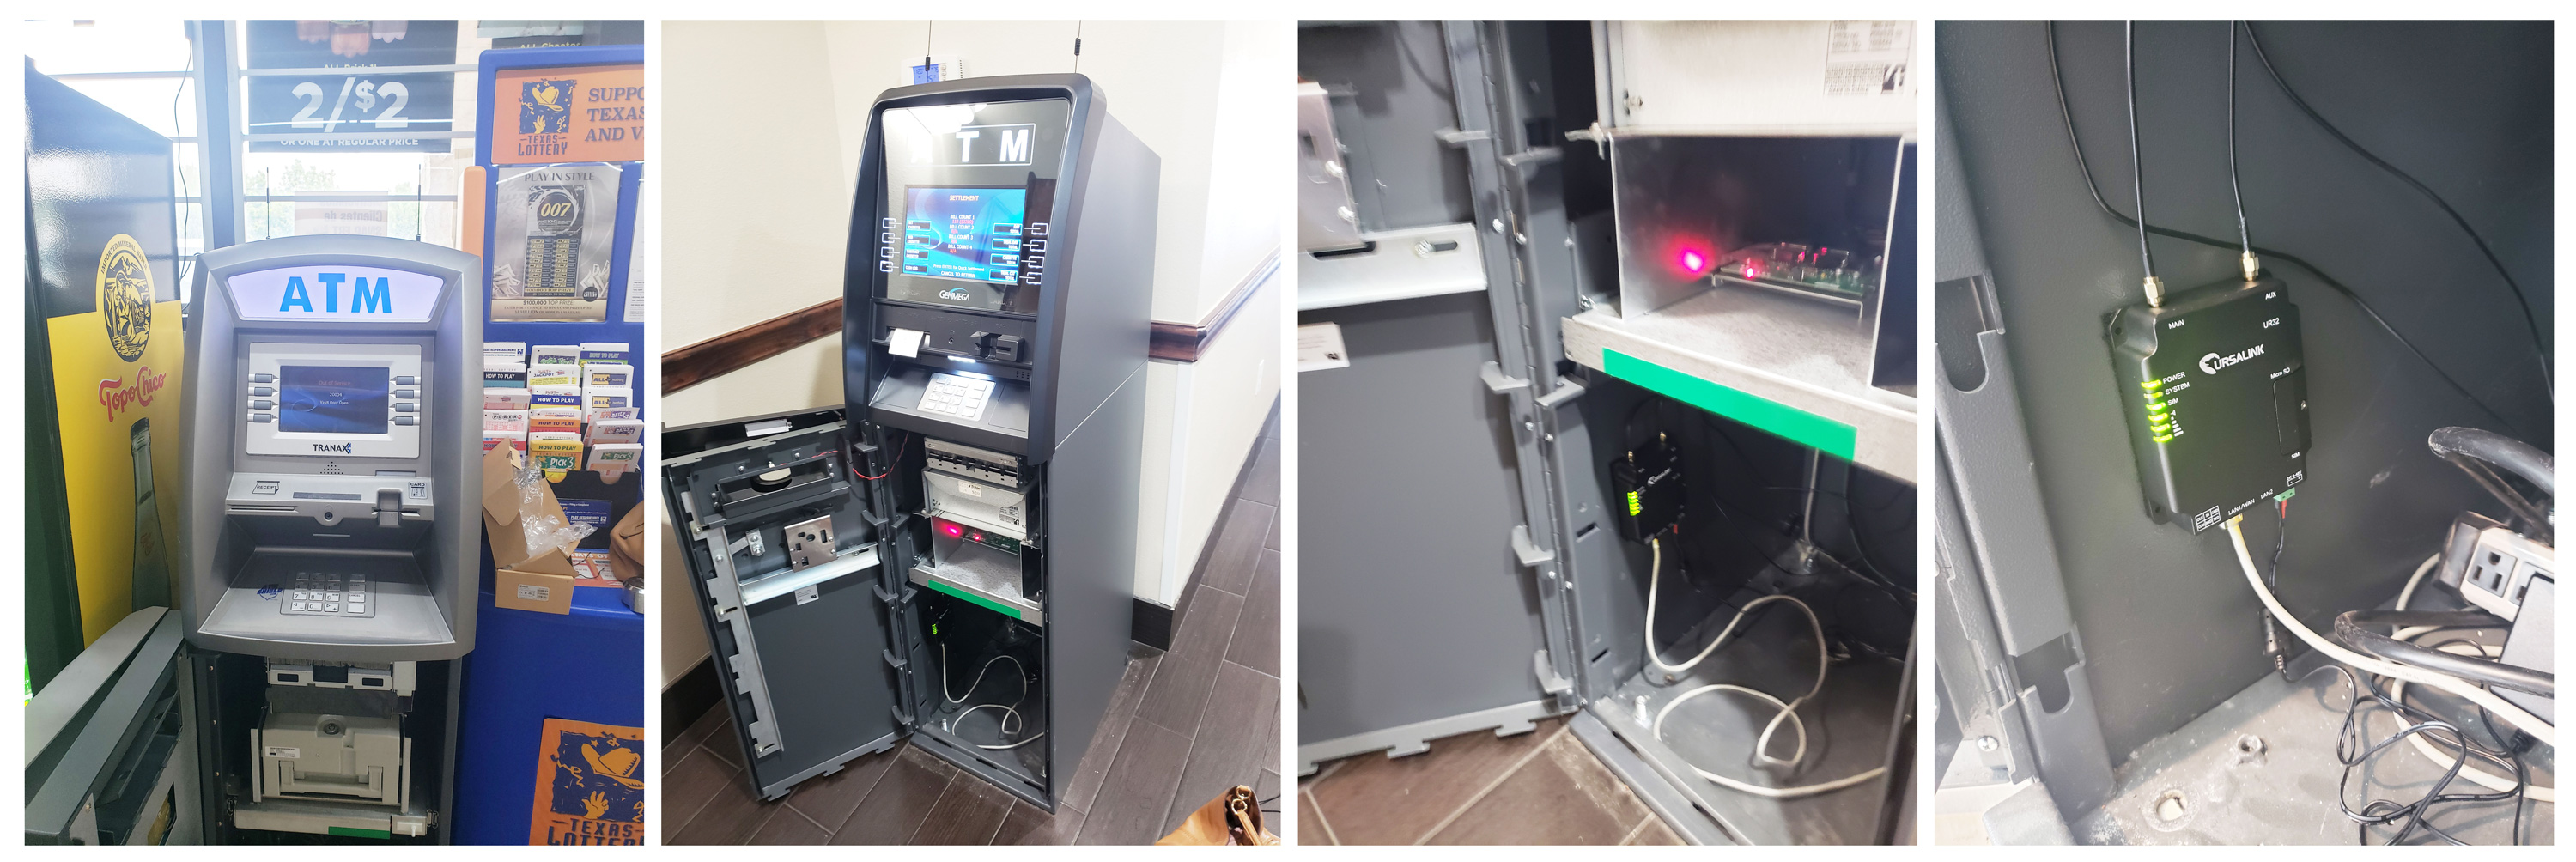 cellular-connectivity-ATM